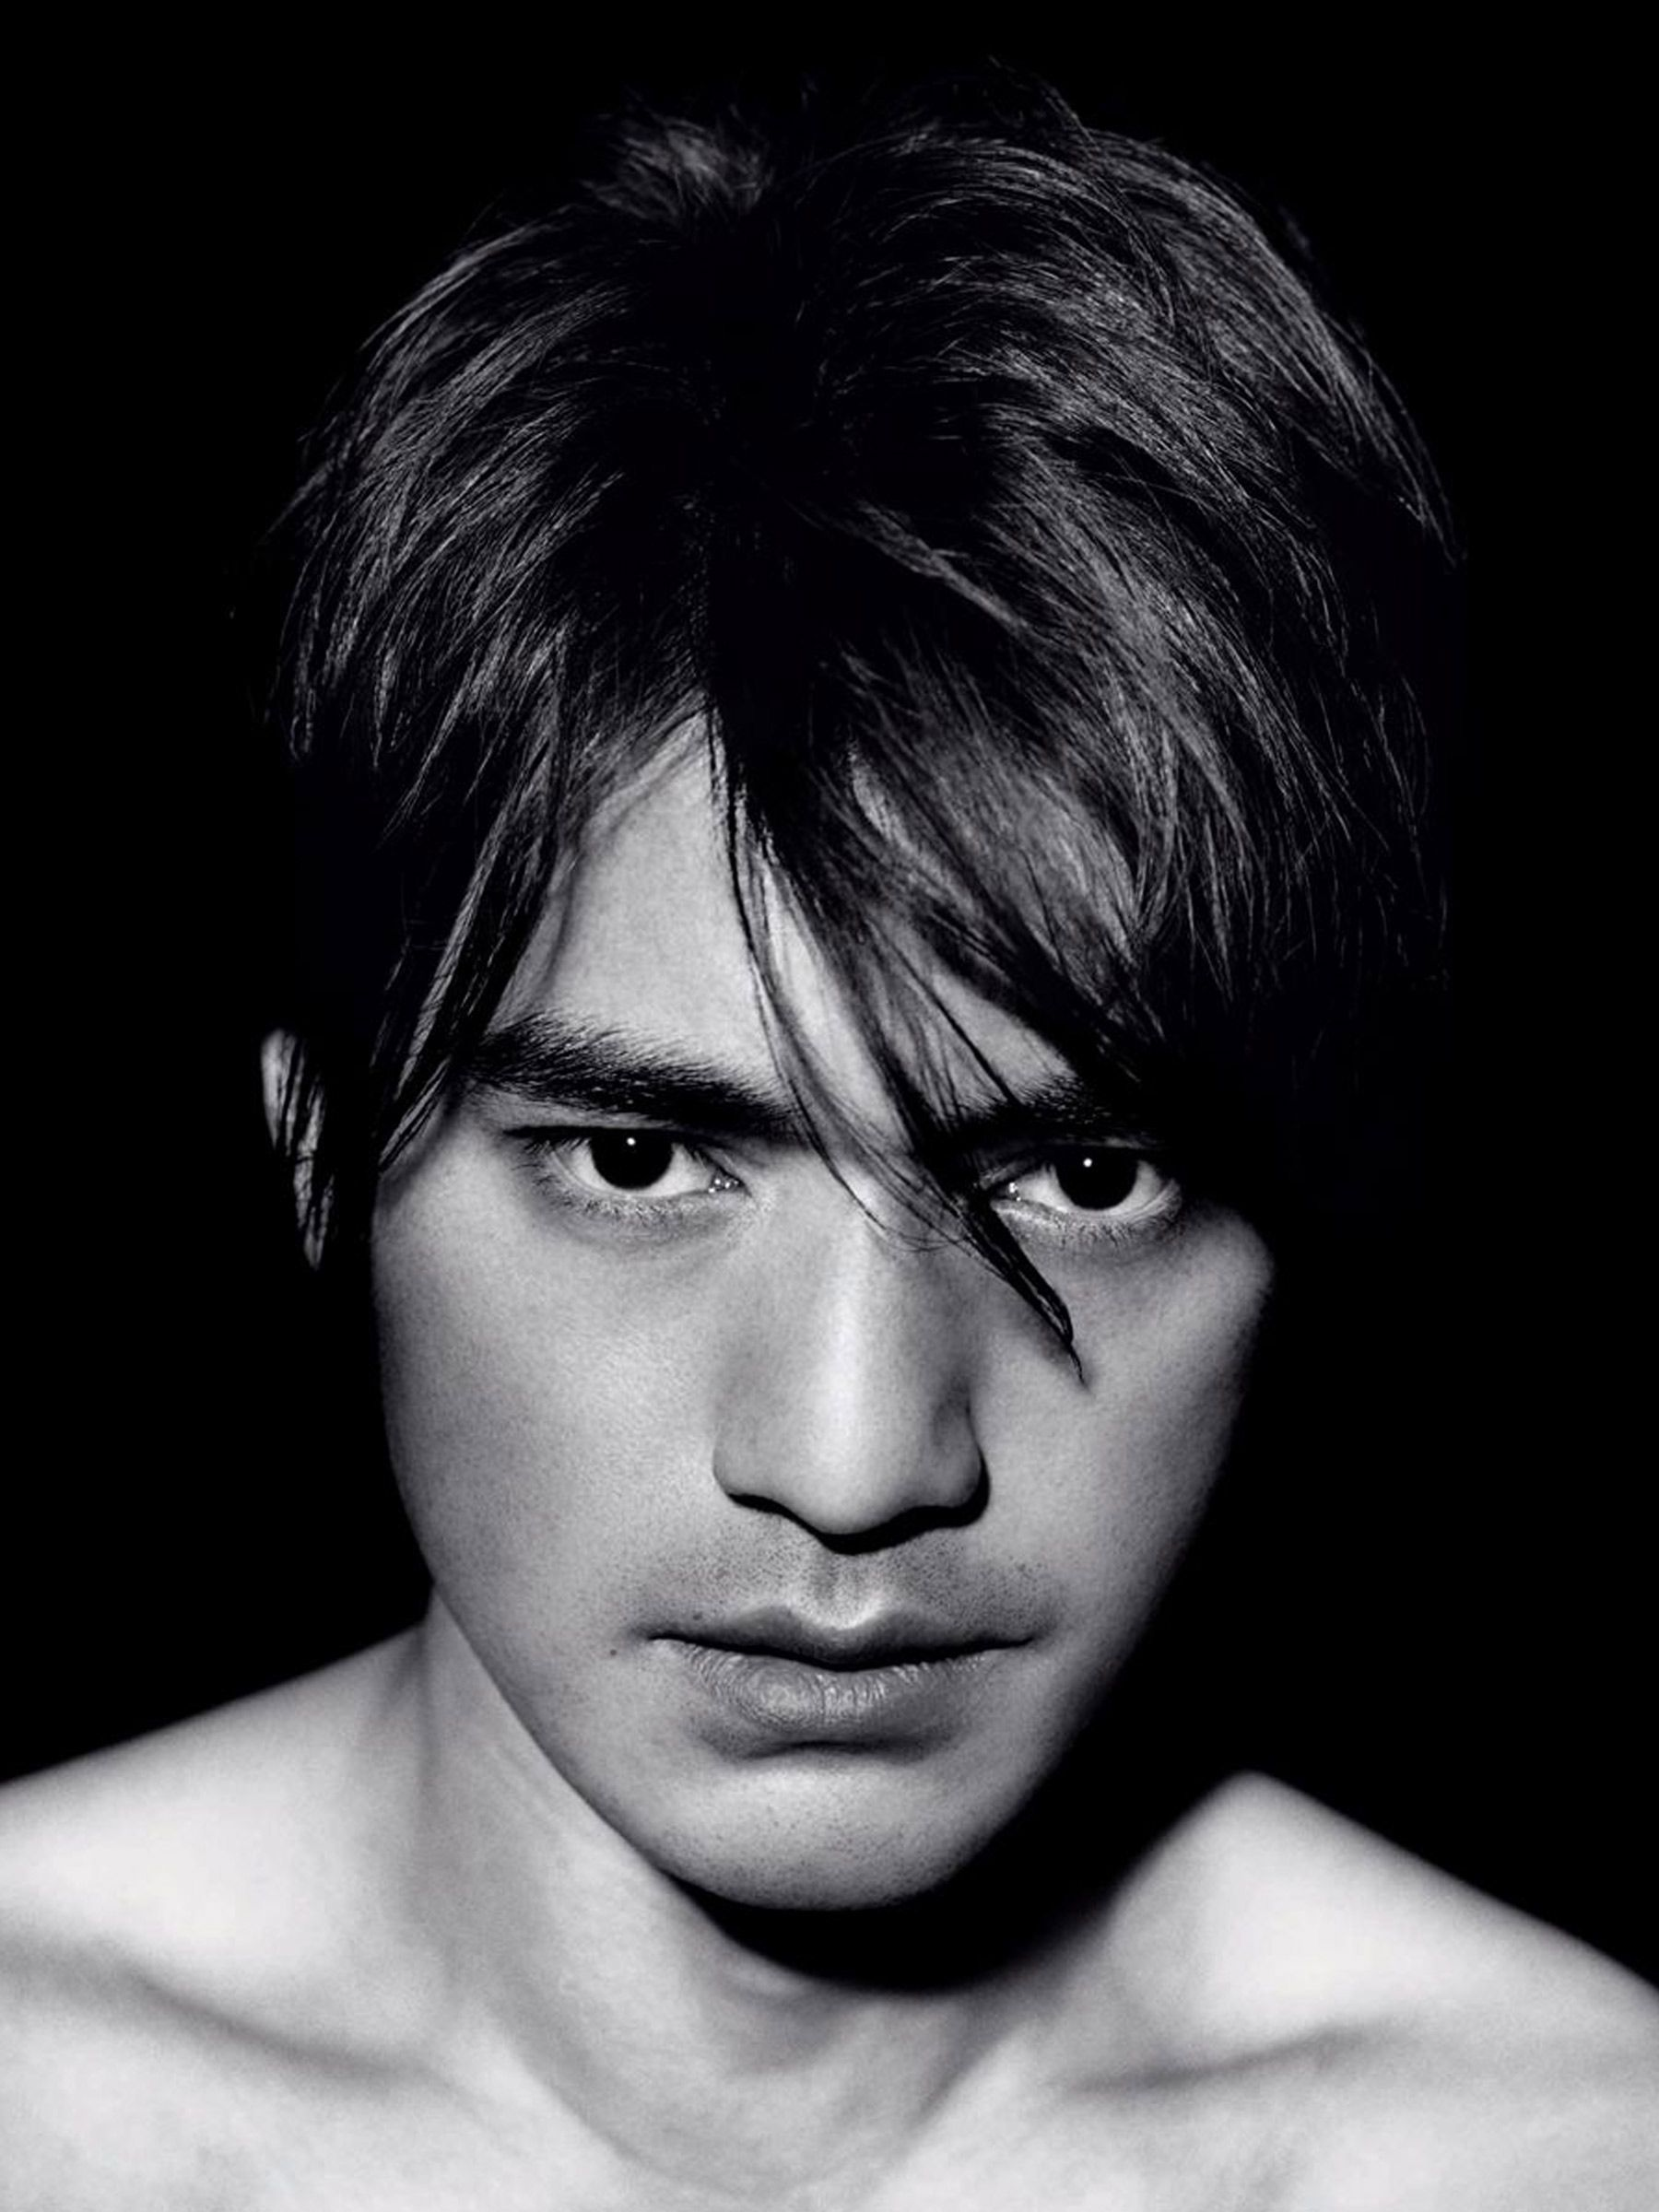 takeshi kaneshiro youngtakeshi kaneshiro 2017, takeshi kaneshiro chungking express, takeshi kaneshiro dolphin, takeshi kaneshiro films, takeshi kaneshiro jackie chan, takeshi kaneshiro young, takeshi kaneshiro online, takeshi kaneshiro weibo, takeshi kaneshiro news 2017, takeshi kaneshiro imdb, takeshi kaneshiro instagram, takeshi kaneshiro 2016, takeshi kaneshiro movies, takeshi kaneshiro tumblr, takeshi kaneshiro net, takeshi kaneshiro wong kar wai, takeshi kaneshiro news, takeshi kaneshiro interview, takeshi kaneshiro wikipedia